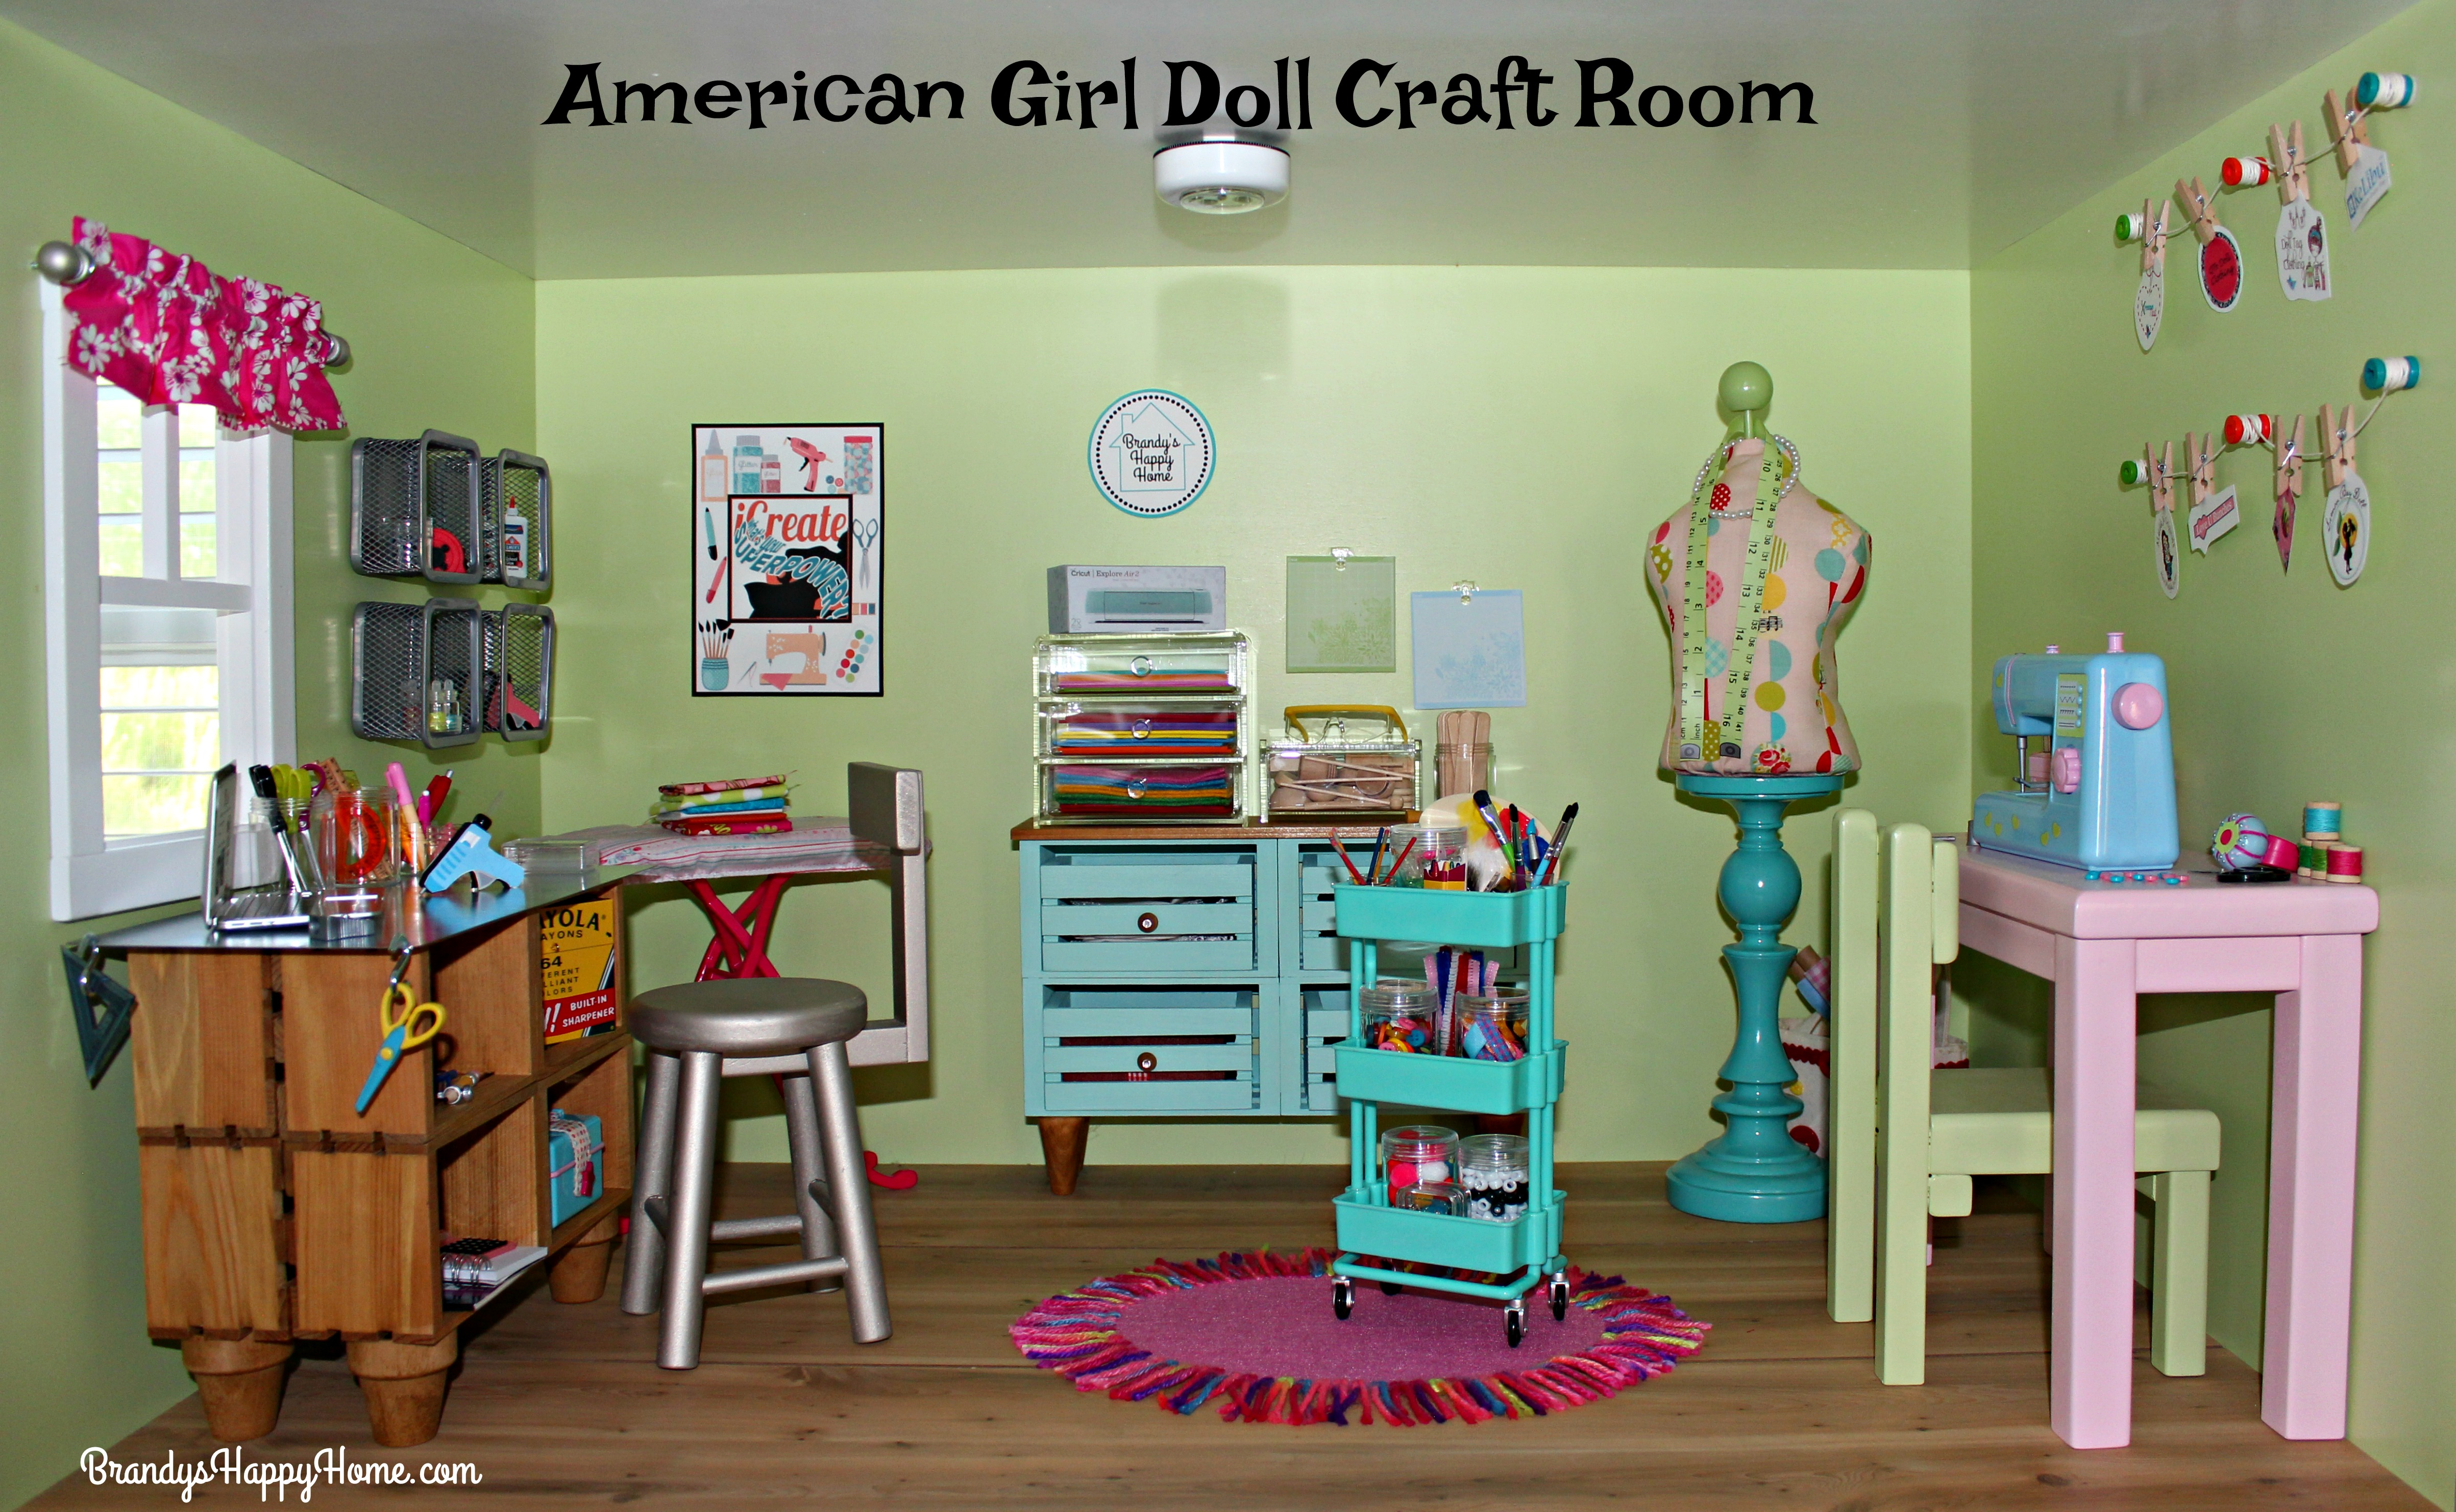 American Girl Dollhouse Craft Room